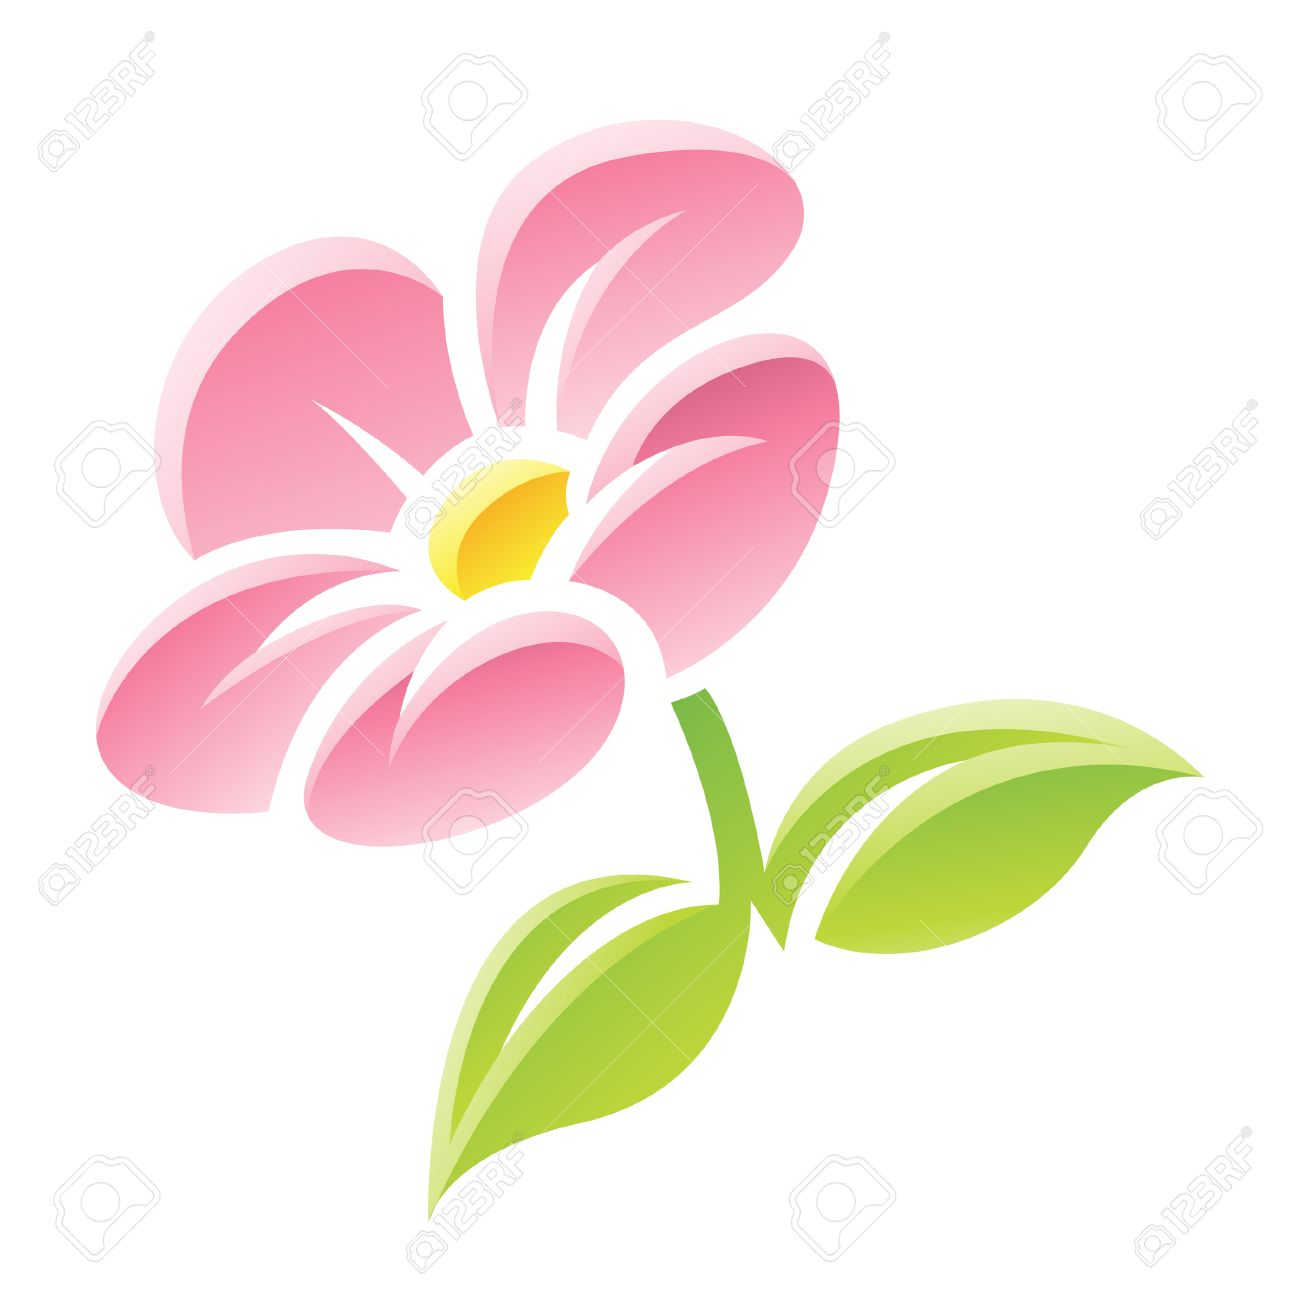 Illustration of pink flower icon isolated on a white background illustration of pink flower icon isolated on a white background stock vector 23638124 dhlflorist Images